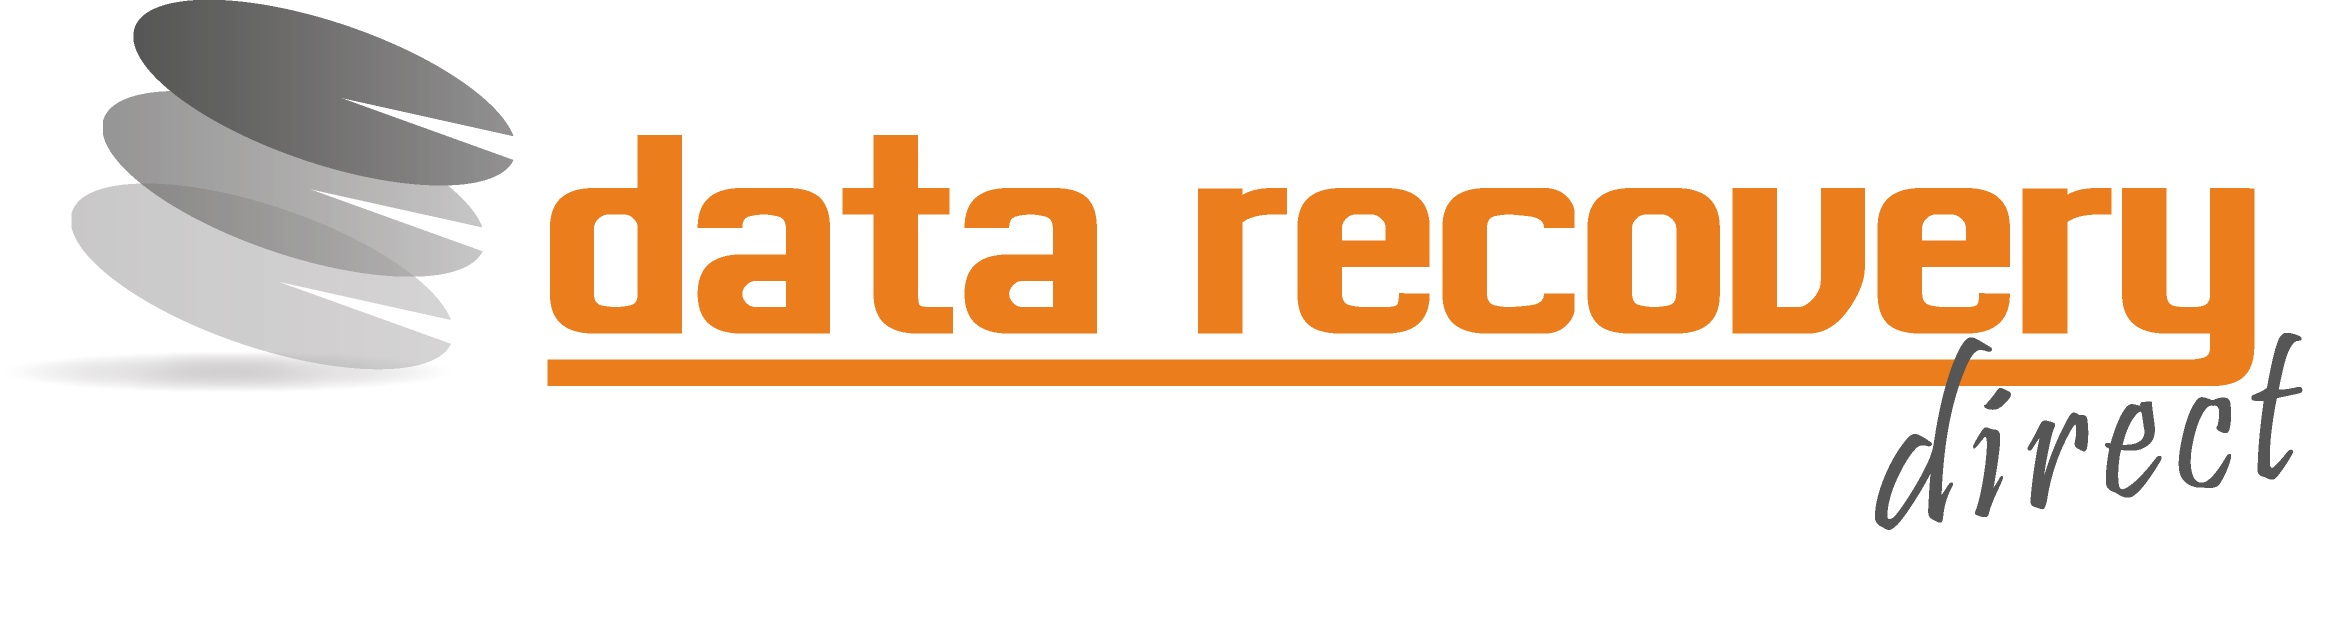 Data Recovery Direct - London, London W2 1NS - 03302 231838 | ShowMeLocal.com